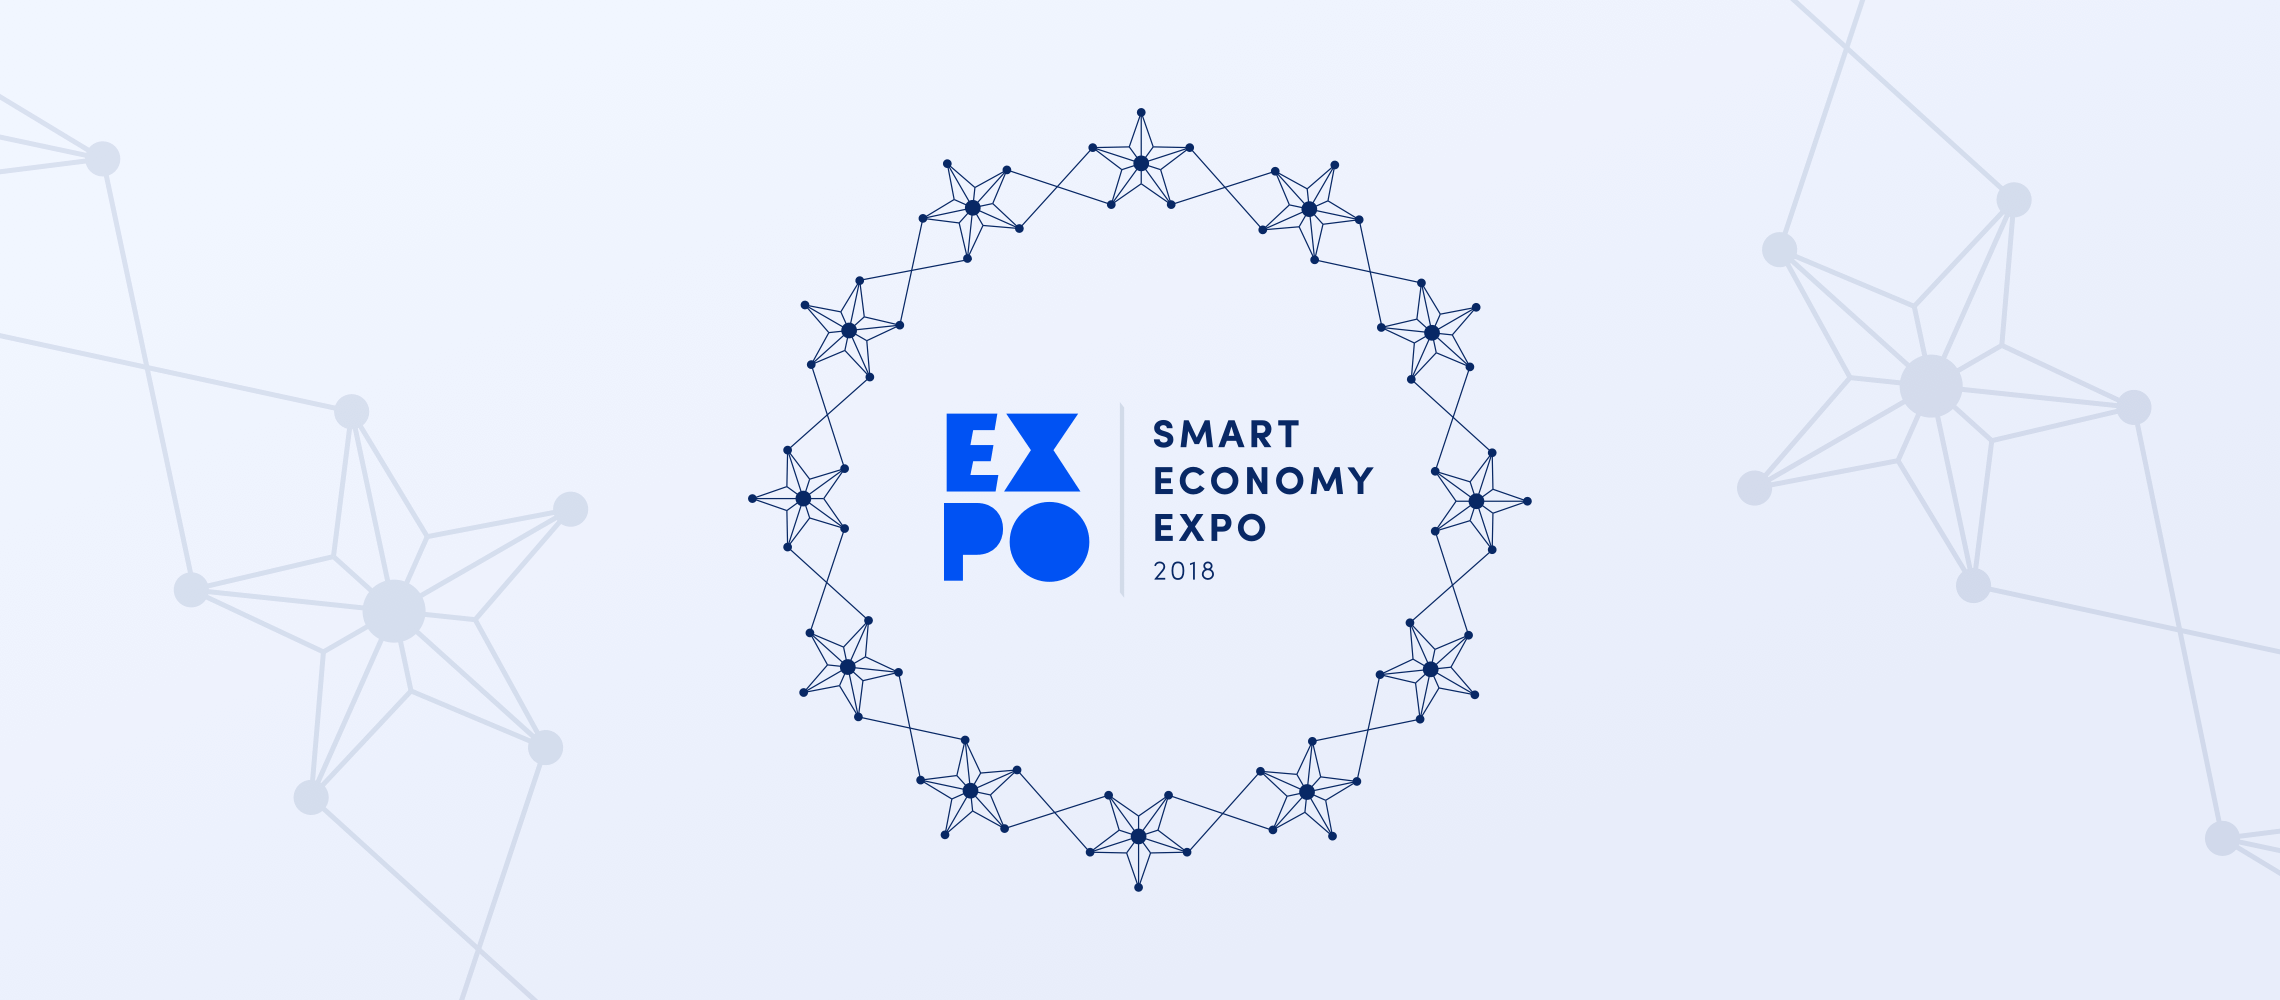 On building a compliant future and the Smart Economy Expo